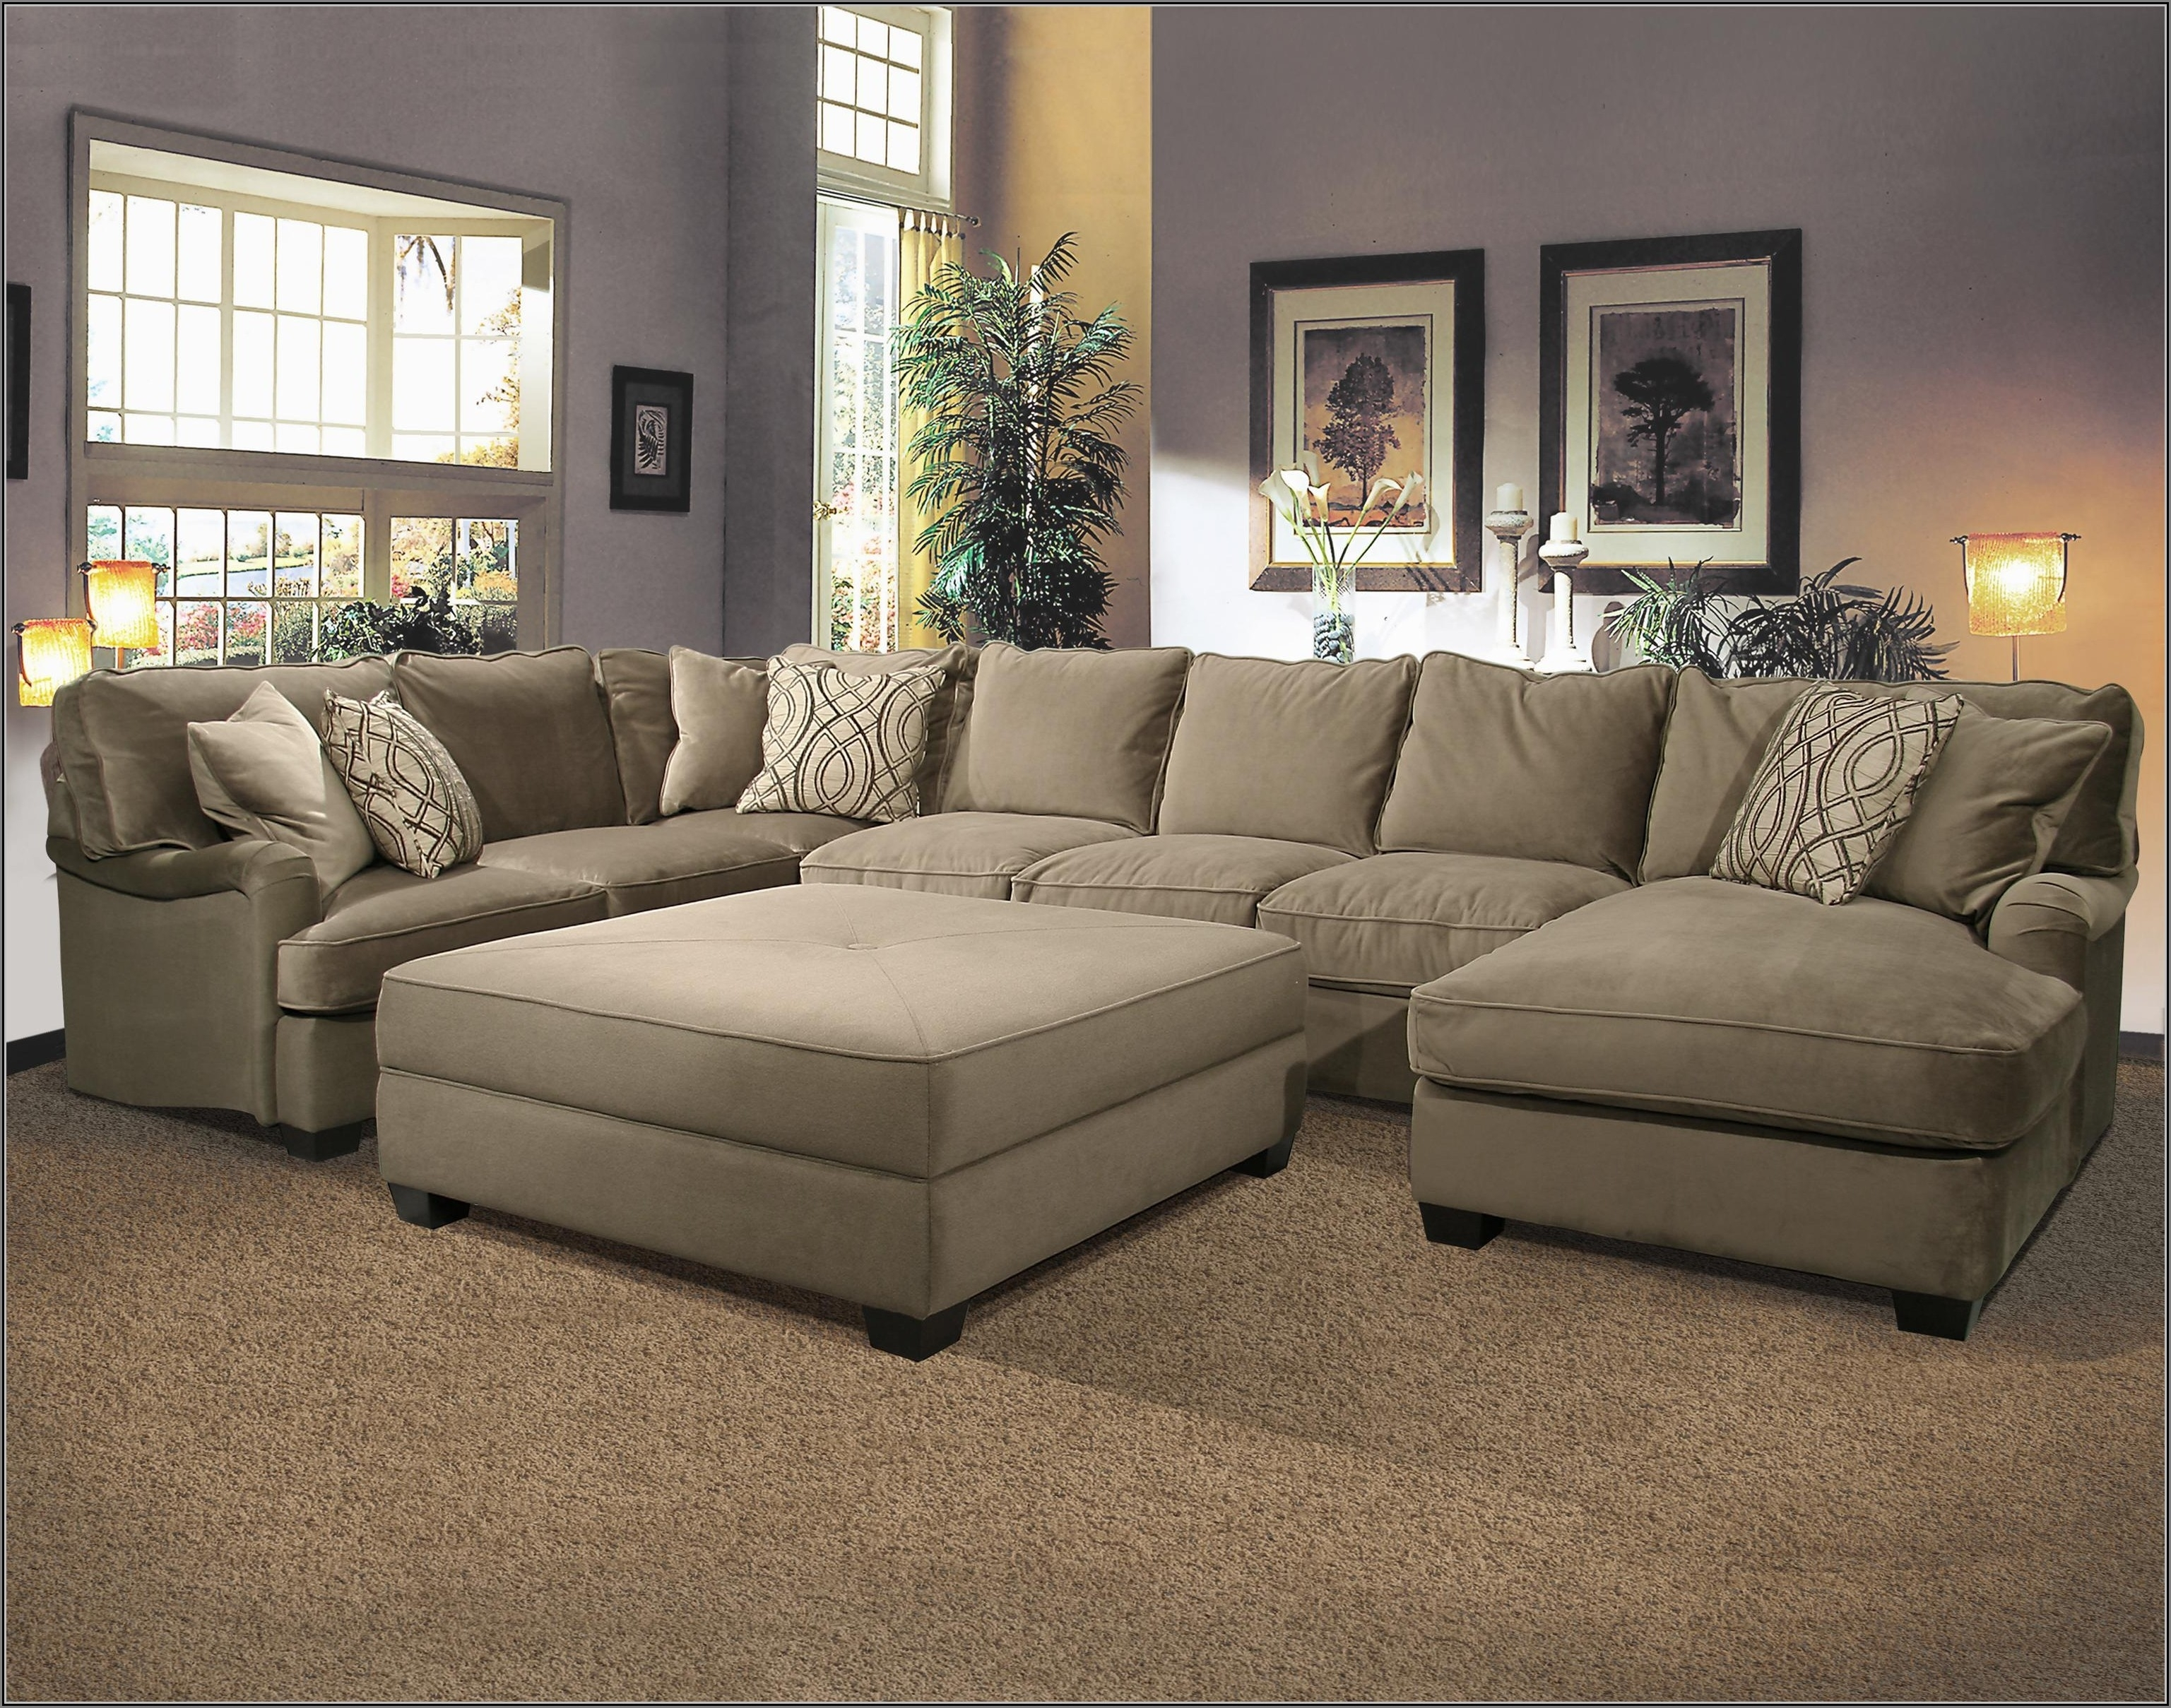 Sectional Sofa With Large Ottoman Hotelsbacau Com Intended For within Sectional Sofas With Ottoman (Image 15 of 15)